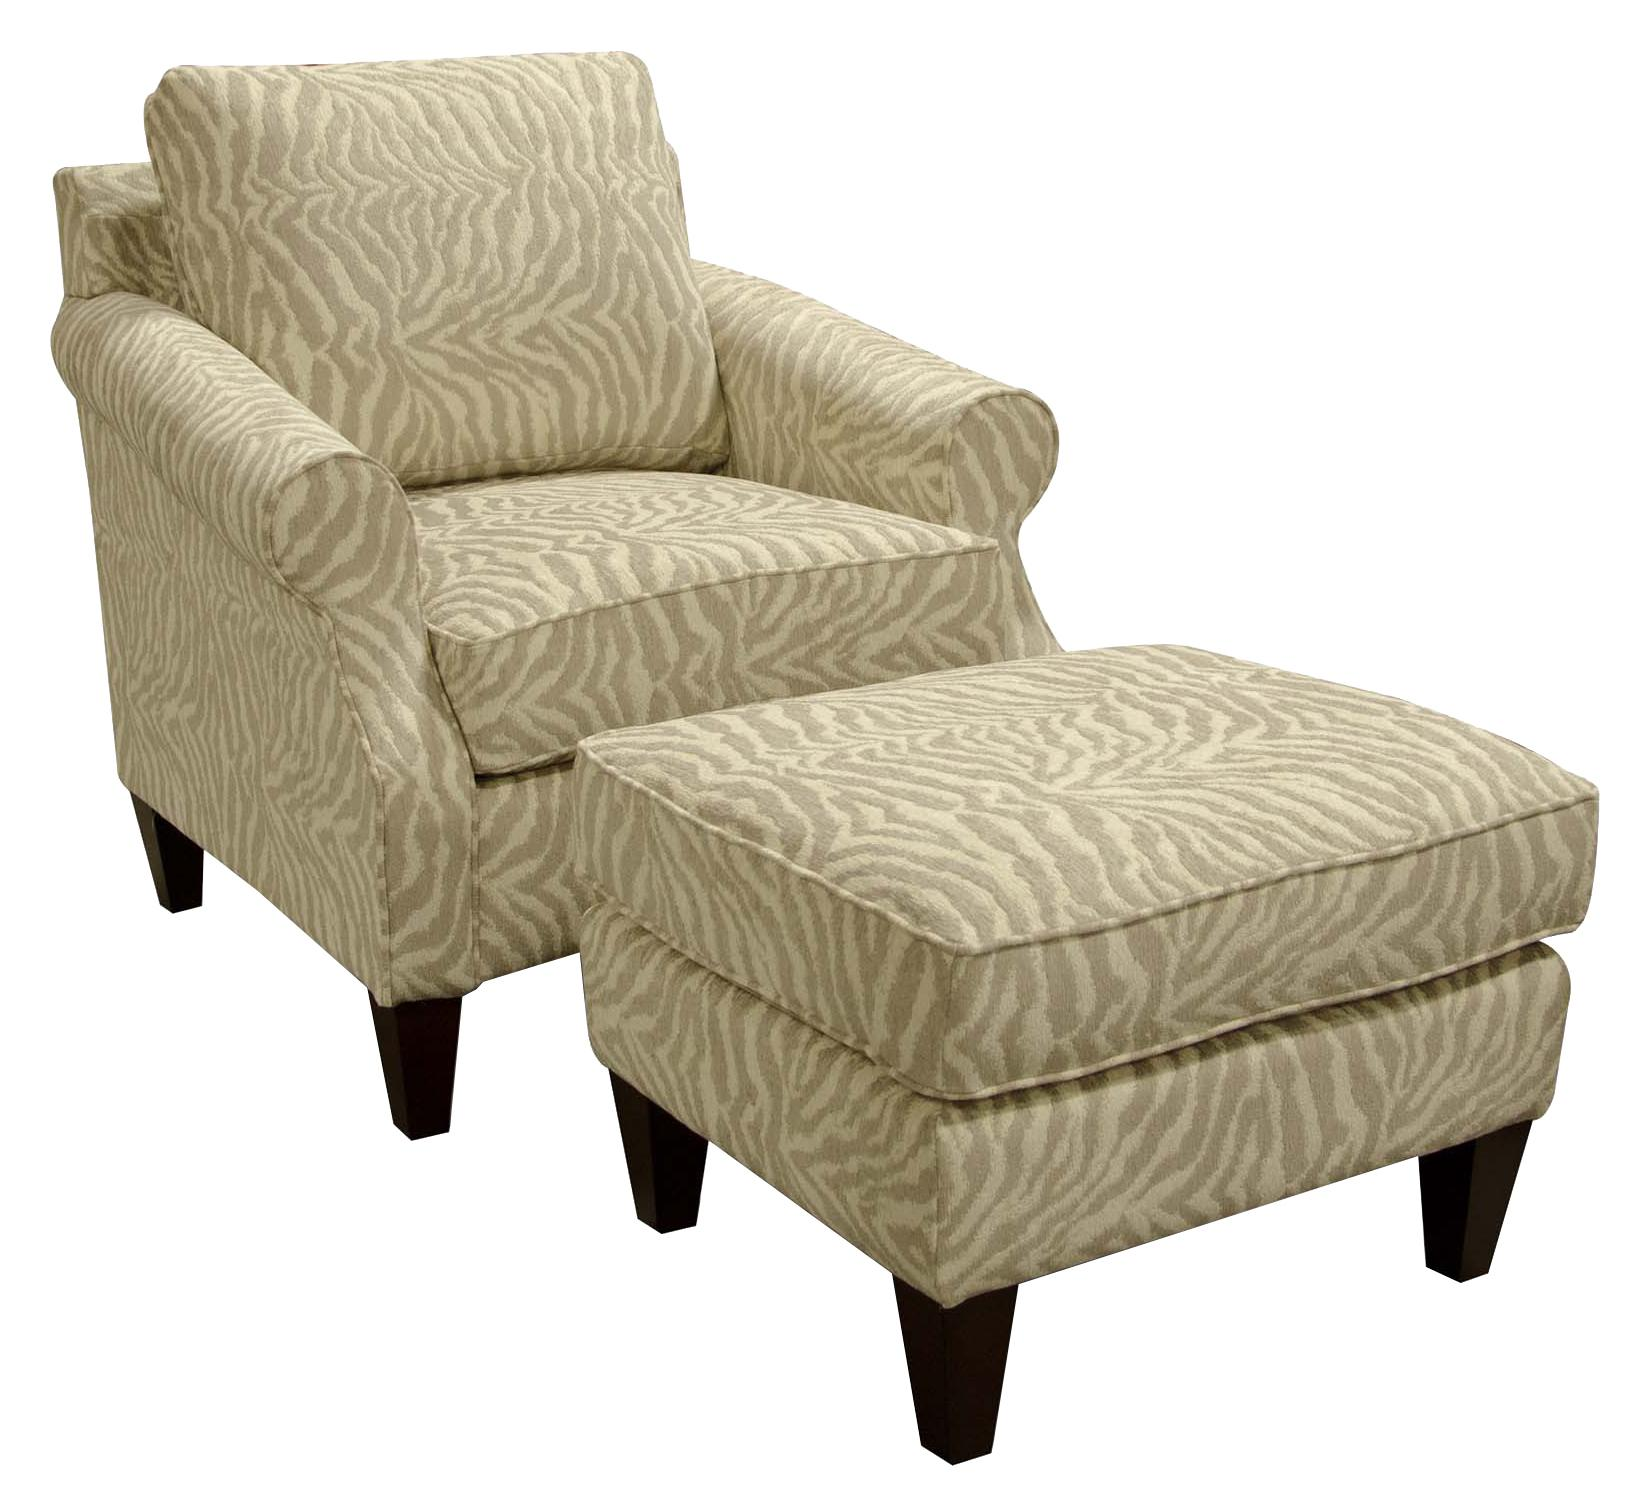 England Duke Living Room Chair and Ottoman - Item Number: 3134+3137